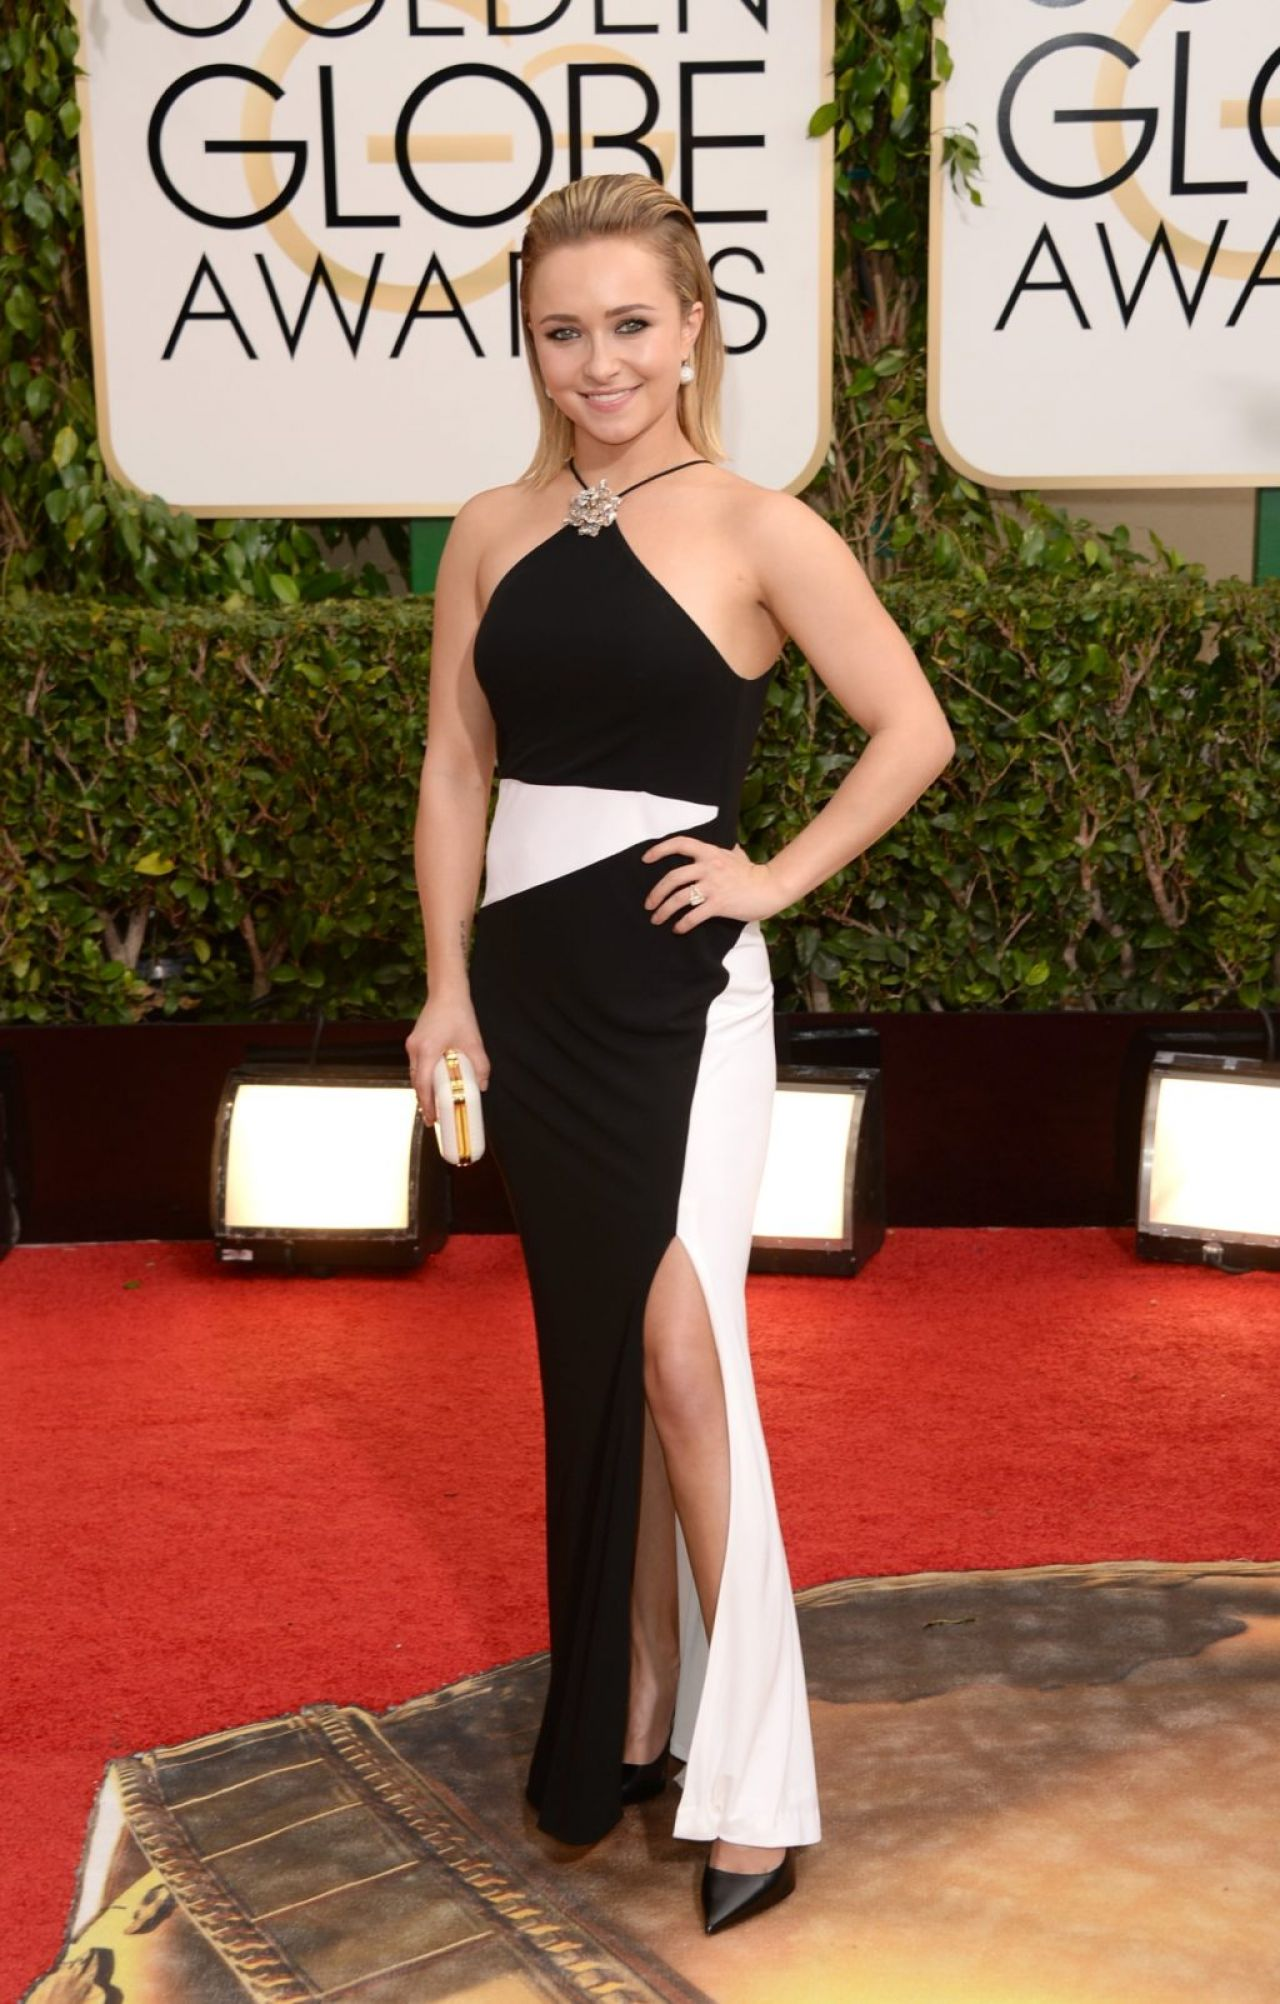 Hayden Panettiere at 71st Annual Golden Globe Awards in Beverly Hills, January 2014